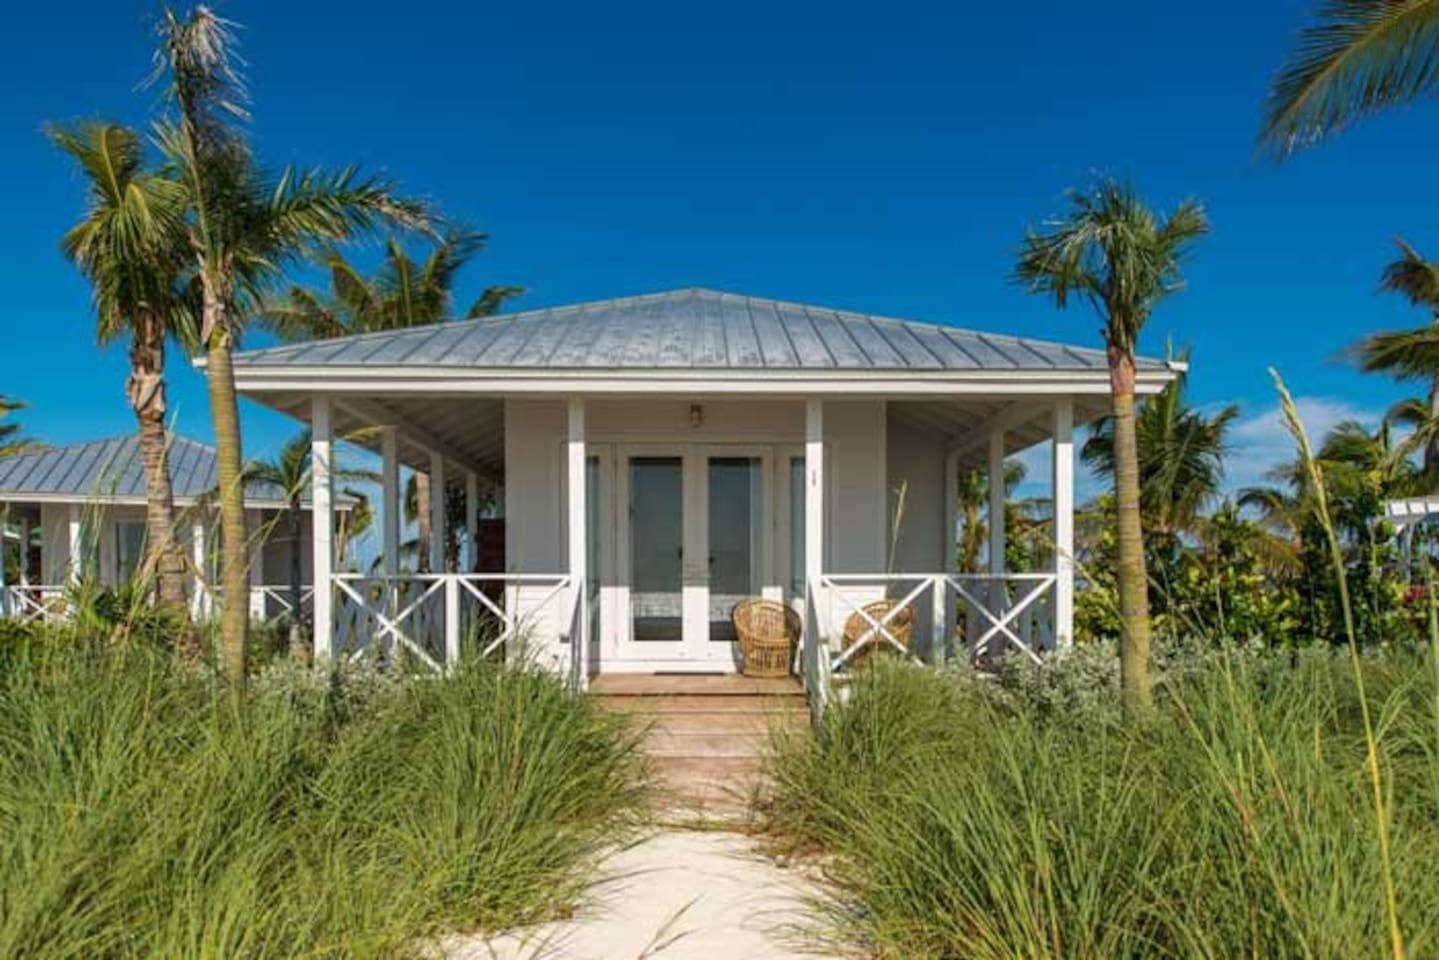 Step off the front porch of your cabana and right into the warm sands of Sunset Beach.